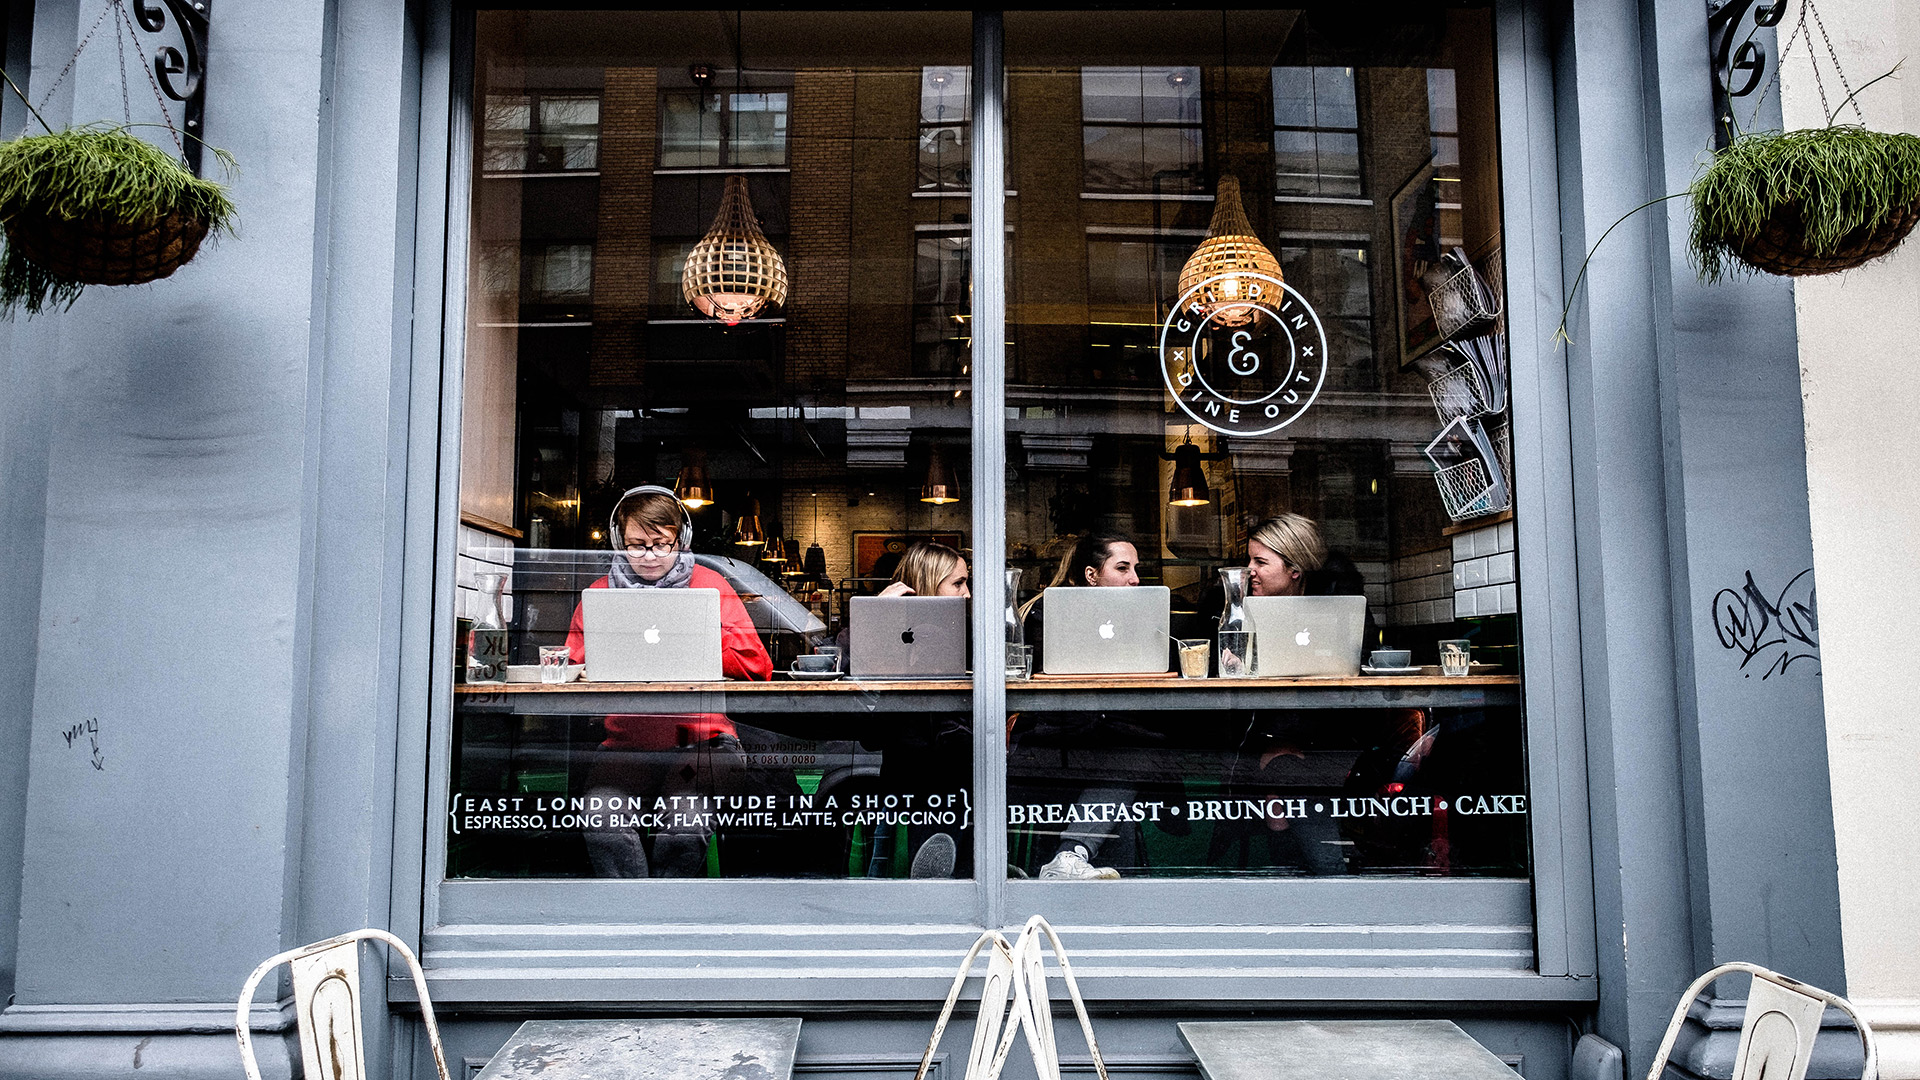 Women work on their laptops at a coffee shop in London.